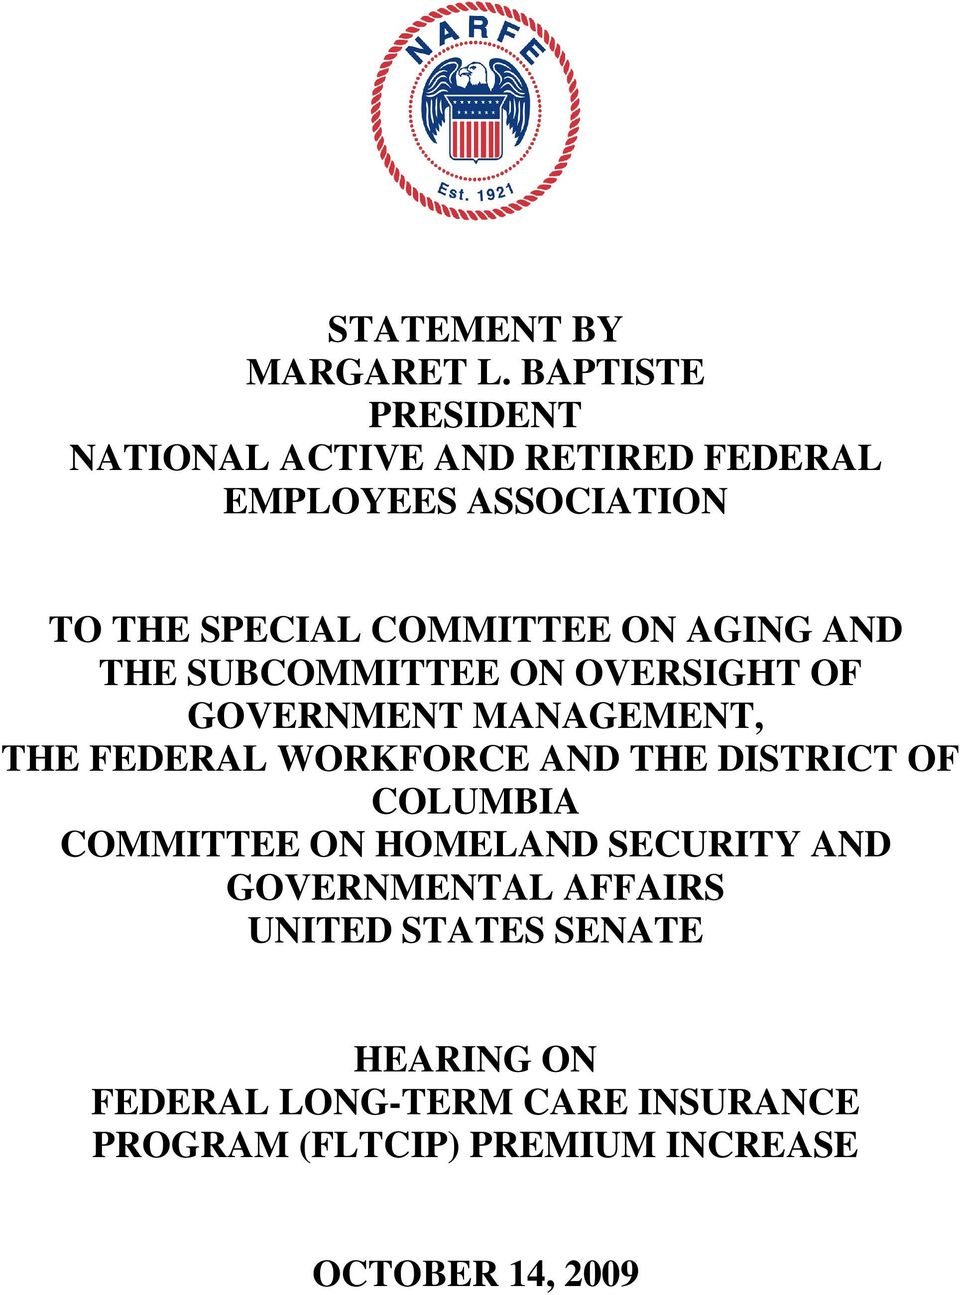 AGING AND THE SUBCOMMITTEE ON OVERSIGHT OF GOVERNMENT MANAGEMENT, THE FEDERAL WORKFORCE AND THE DISTRICT